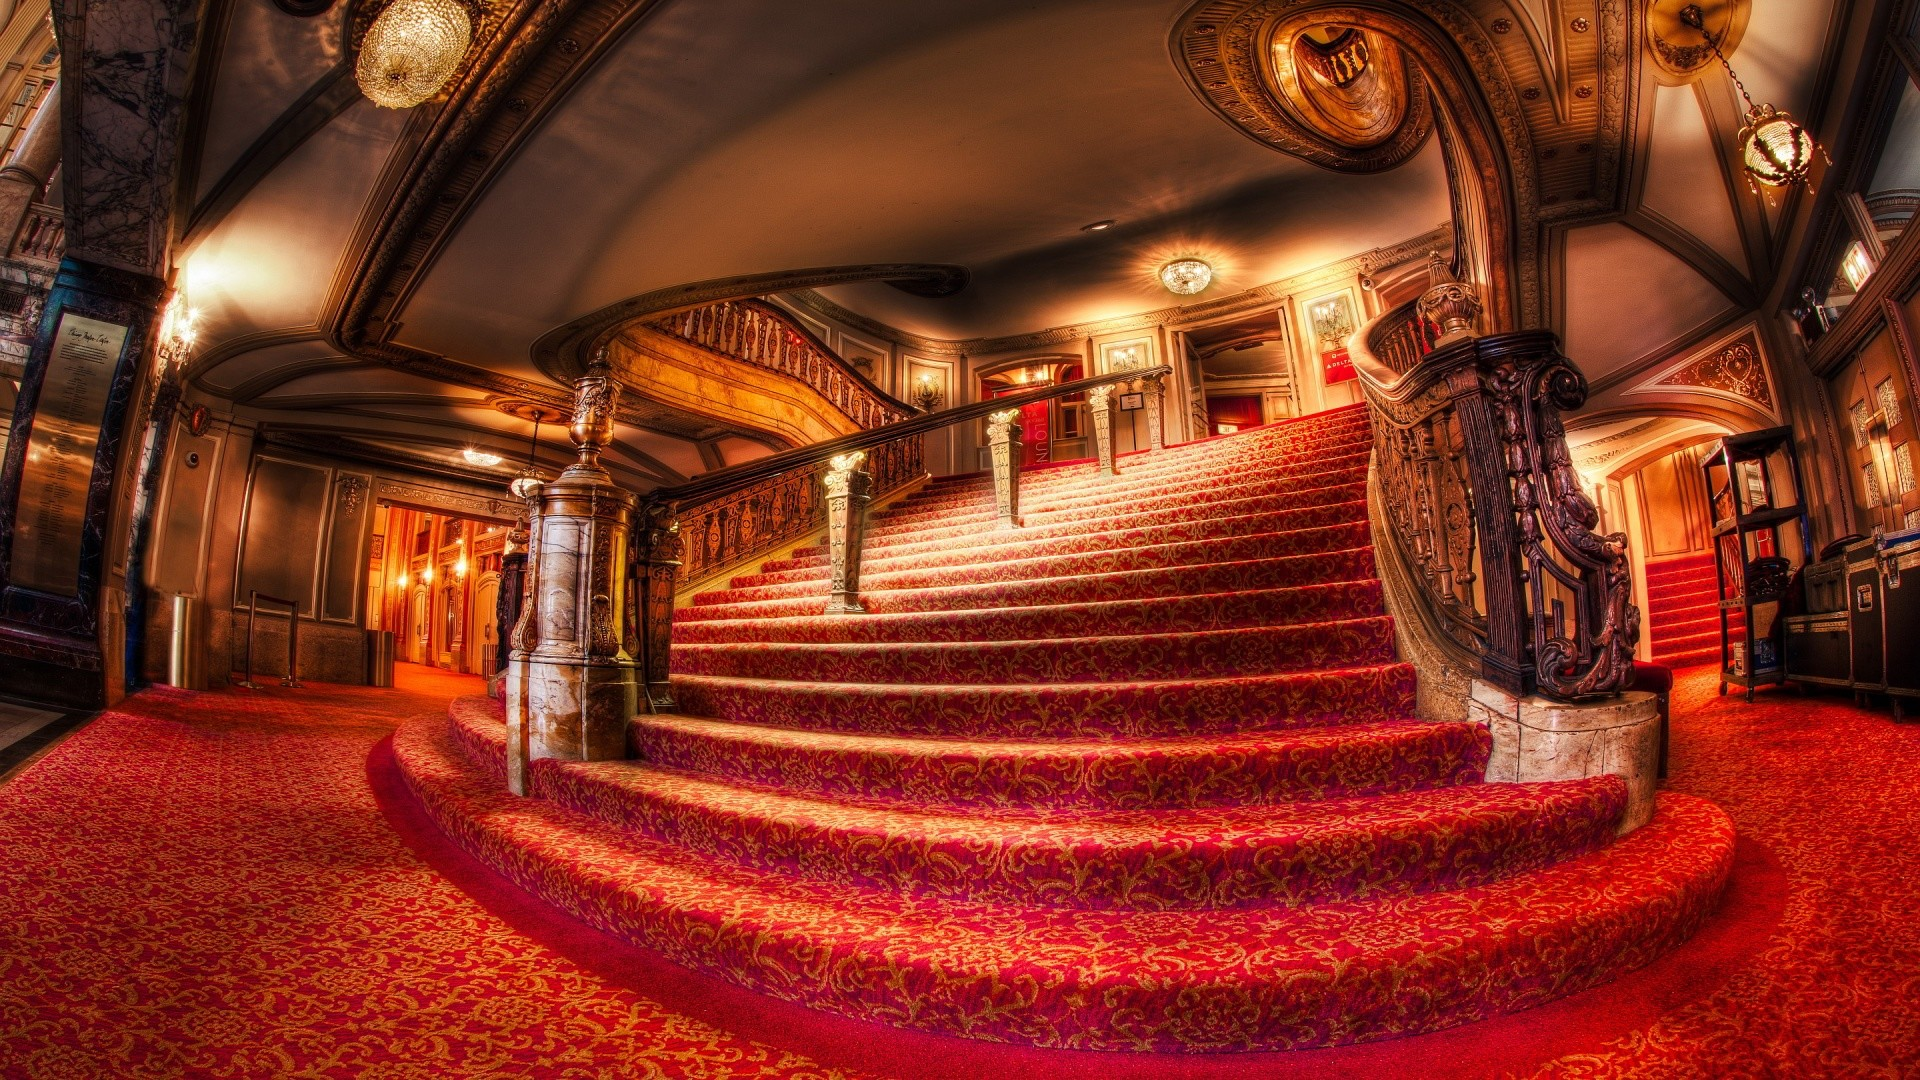 1920x1080 theater stairs wallpaper background 2449